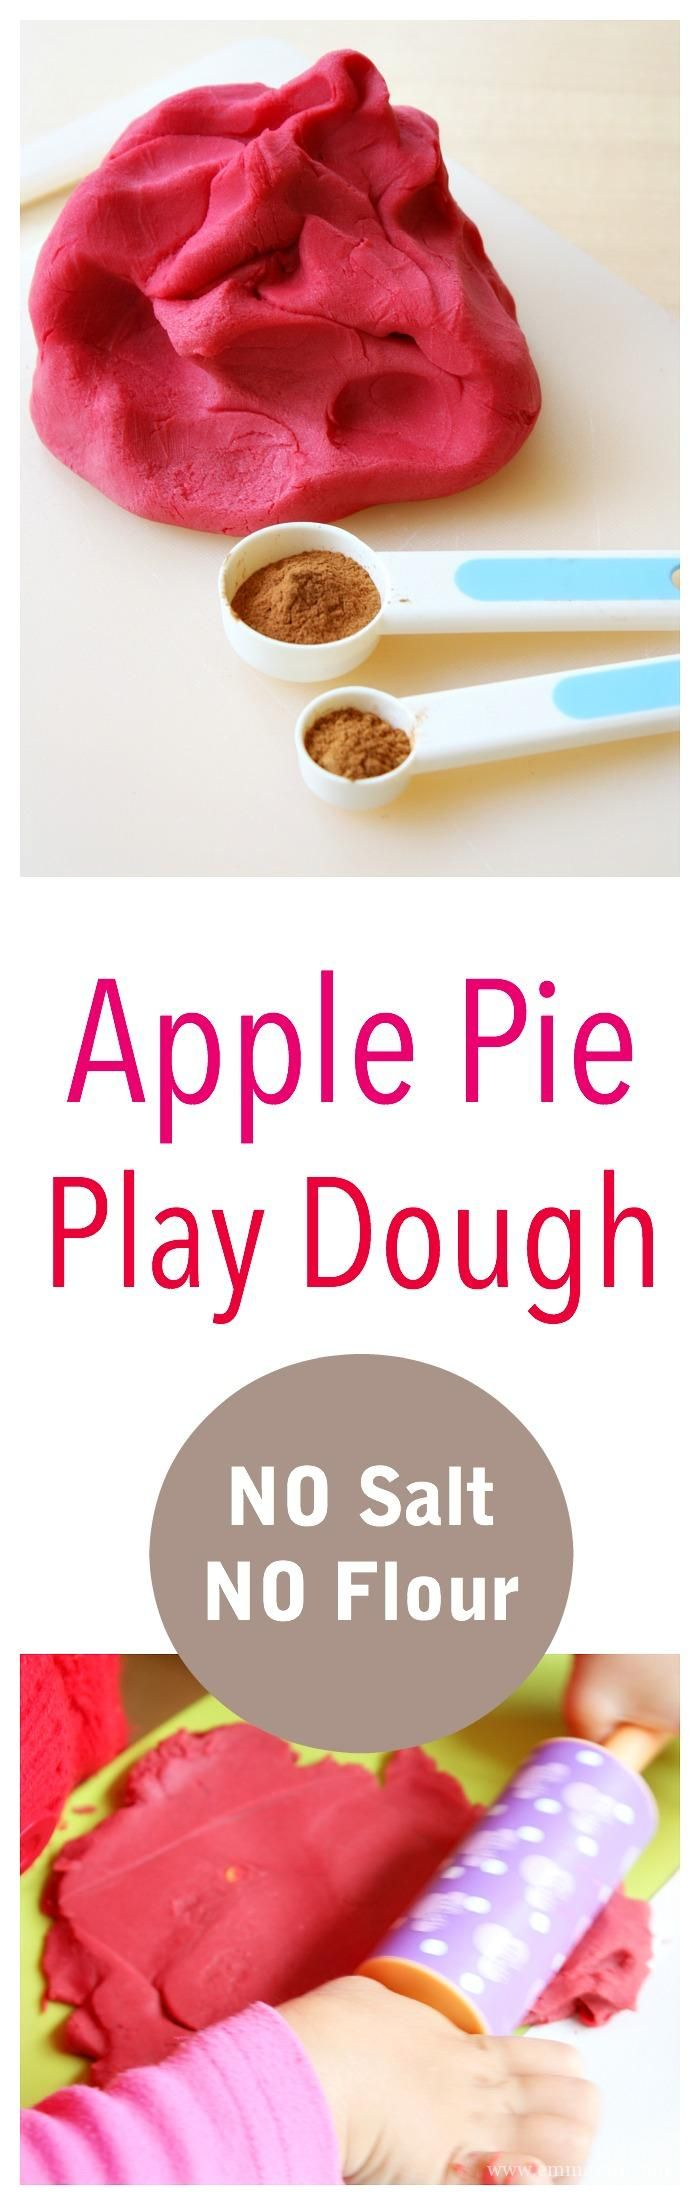 Freshly baked apple pie play dough. This play dough is a little different to the ones we usually make - as it contains NO salt and NO flour! Smooth as silk!